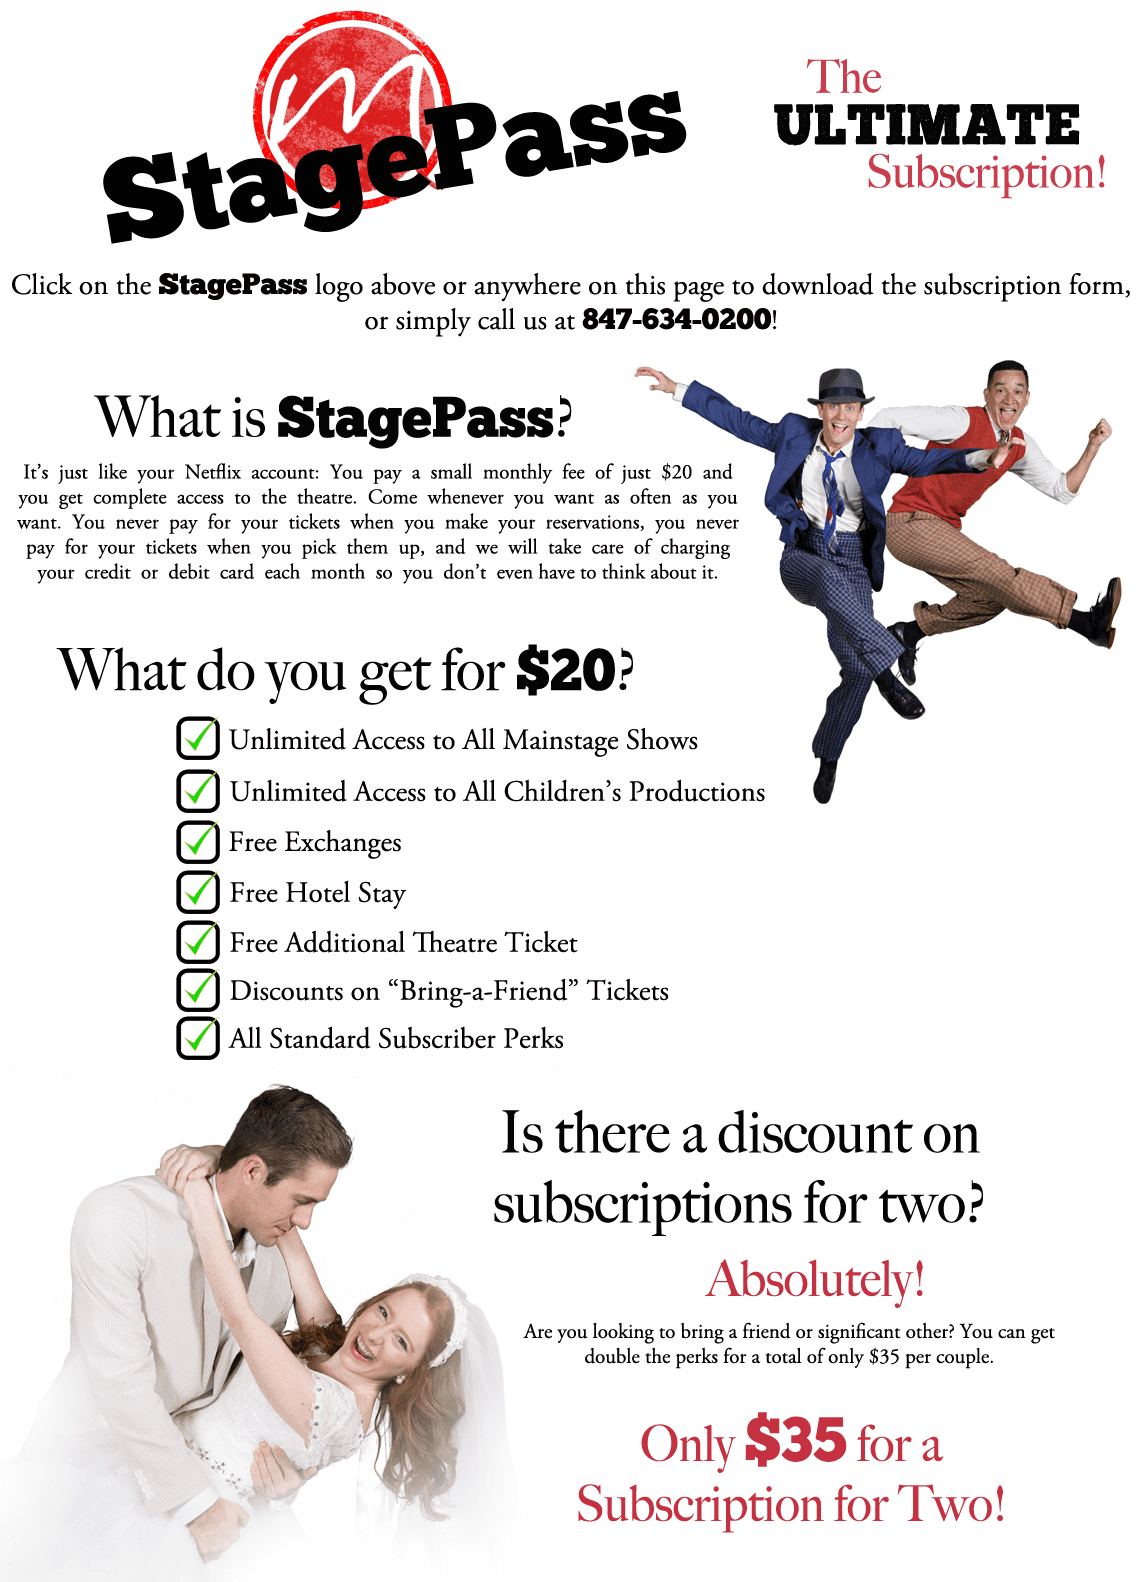 StagePass is just like your Netflix account; you pay a small monthly fee of just $20 and you get complete access to the theatre.